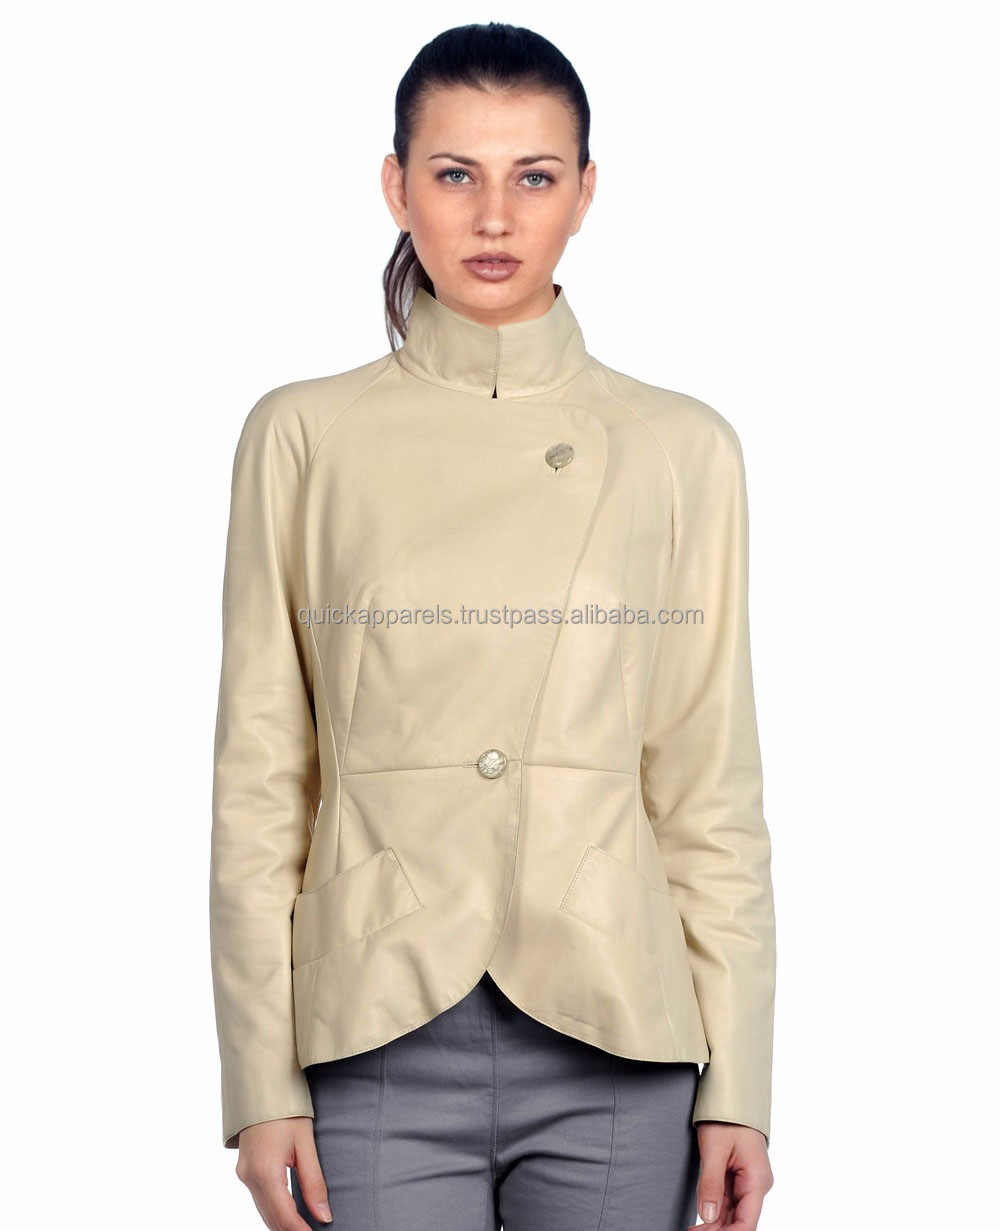 wholesale plus size autumn winter coat and jackets women 2017 winter apparel clothes high quality pu leather